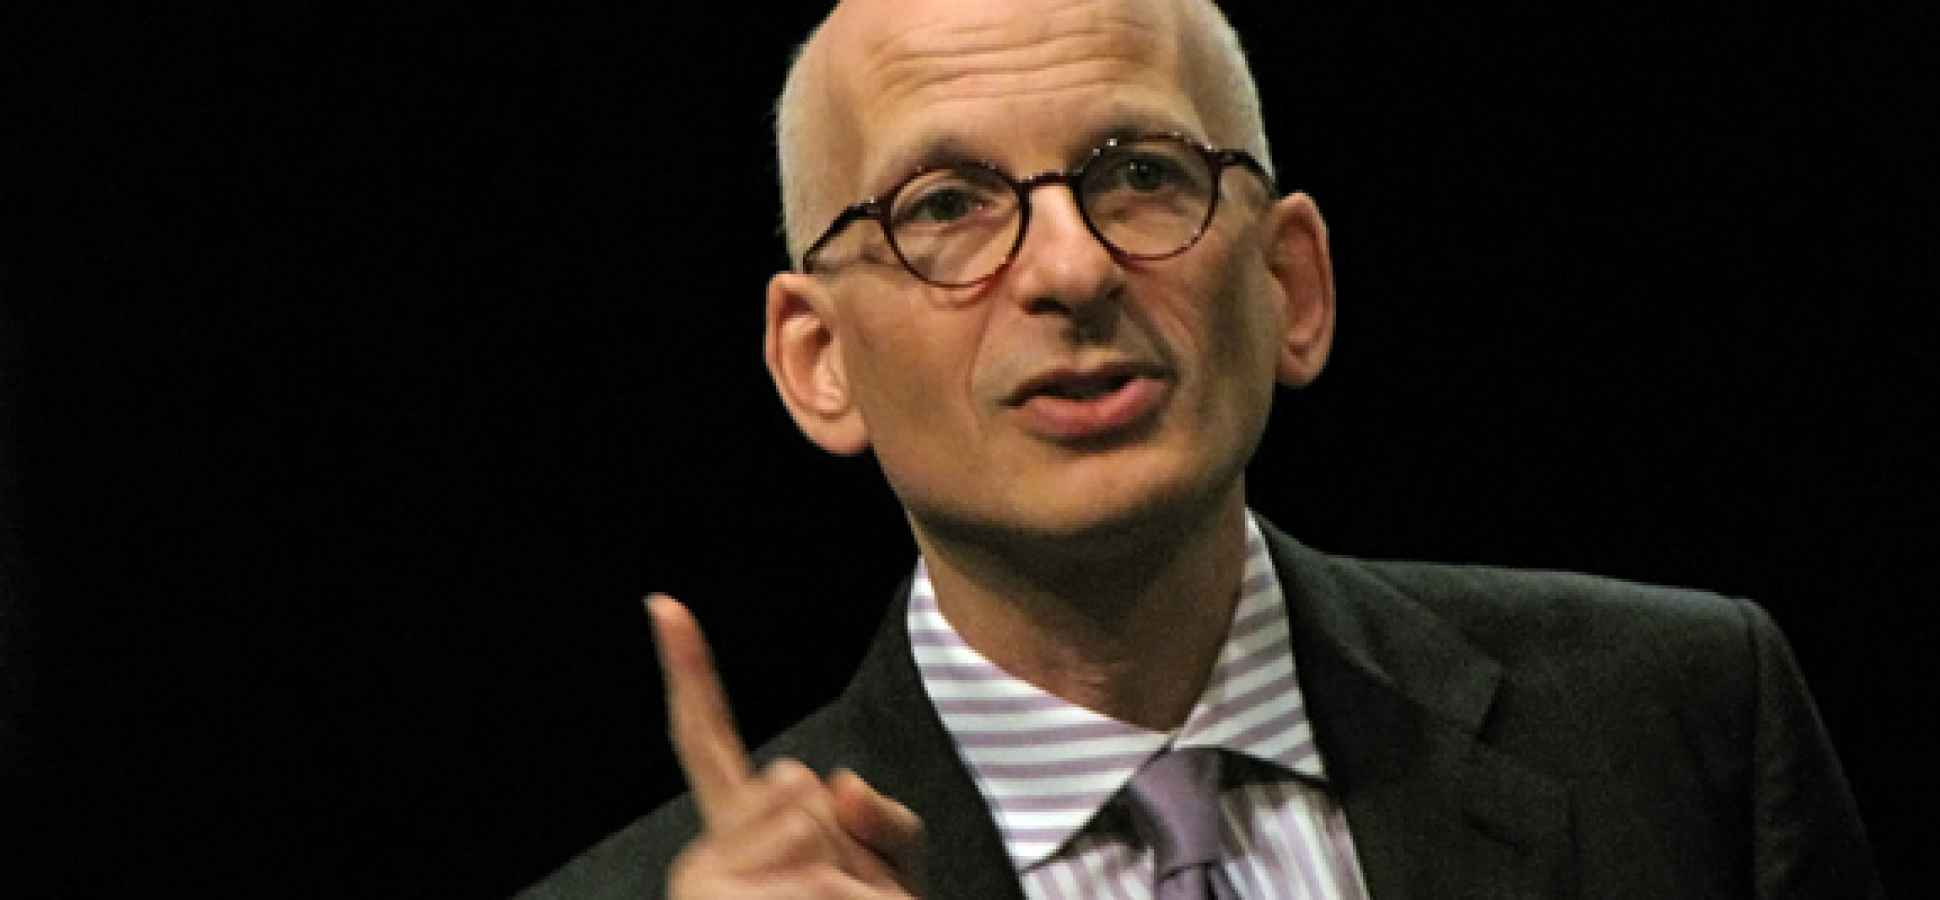 Seth Godin: Why Small Businesses Fail